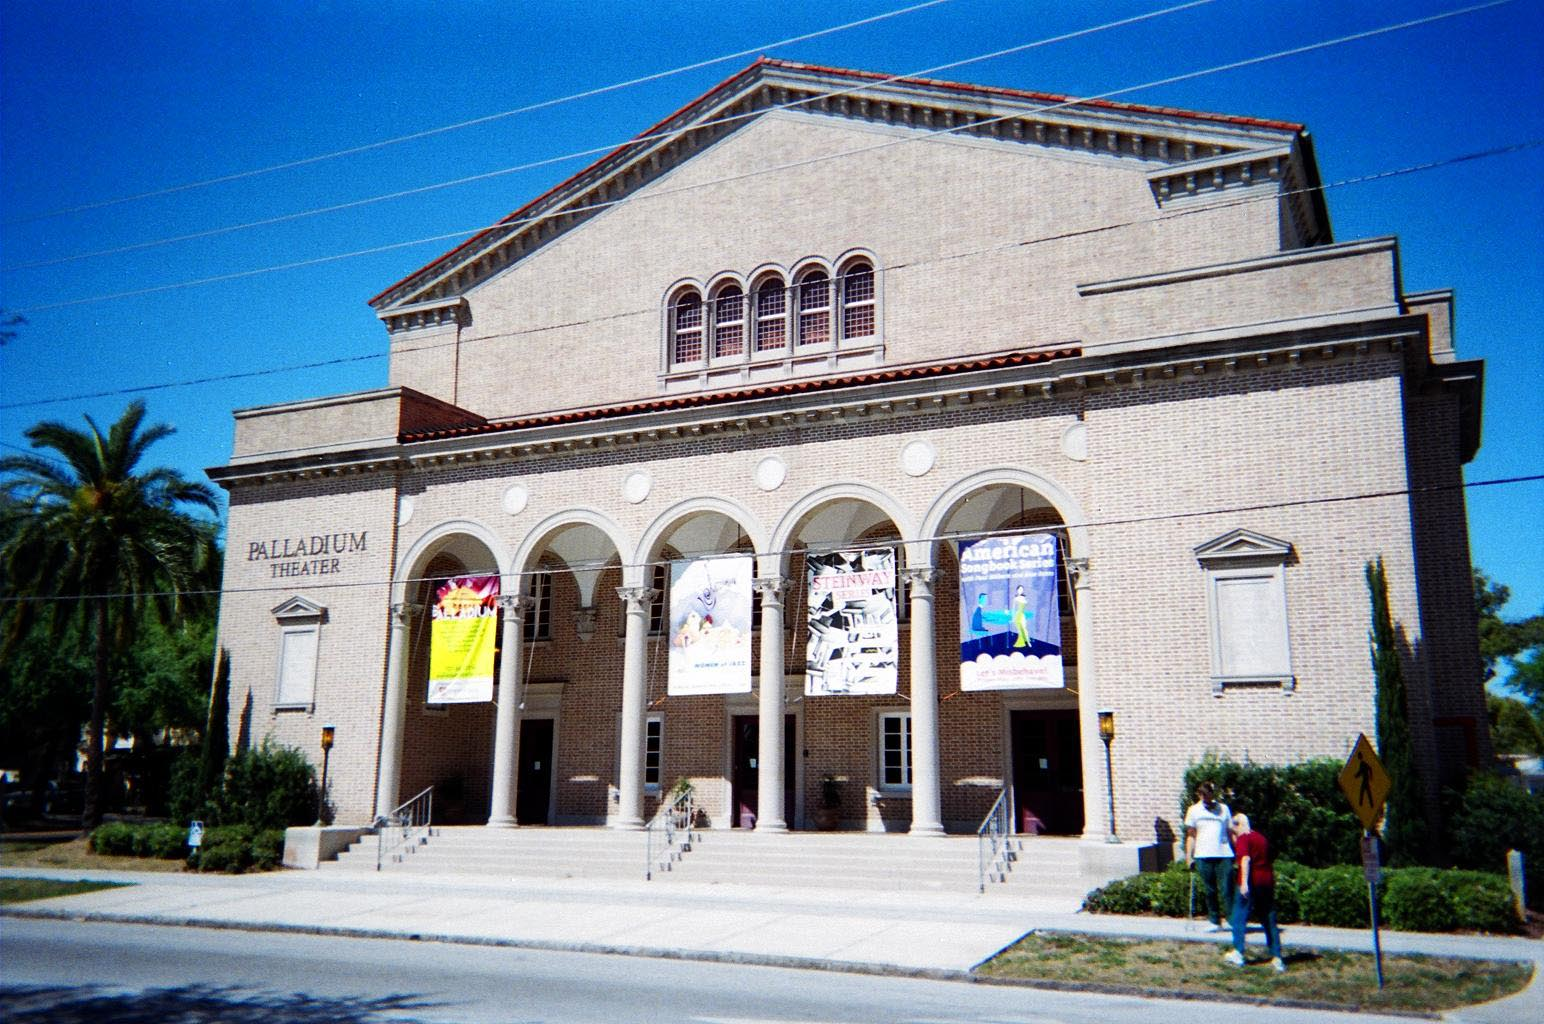 The Palladium Theater in St. Petersburg, Florida, is located in the former First Church of Christ Scientist, built in 1925. It is located in the North Shore Historic District.